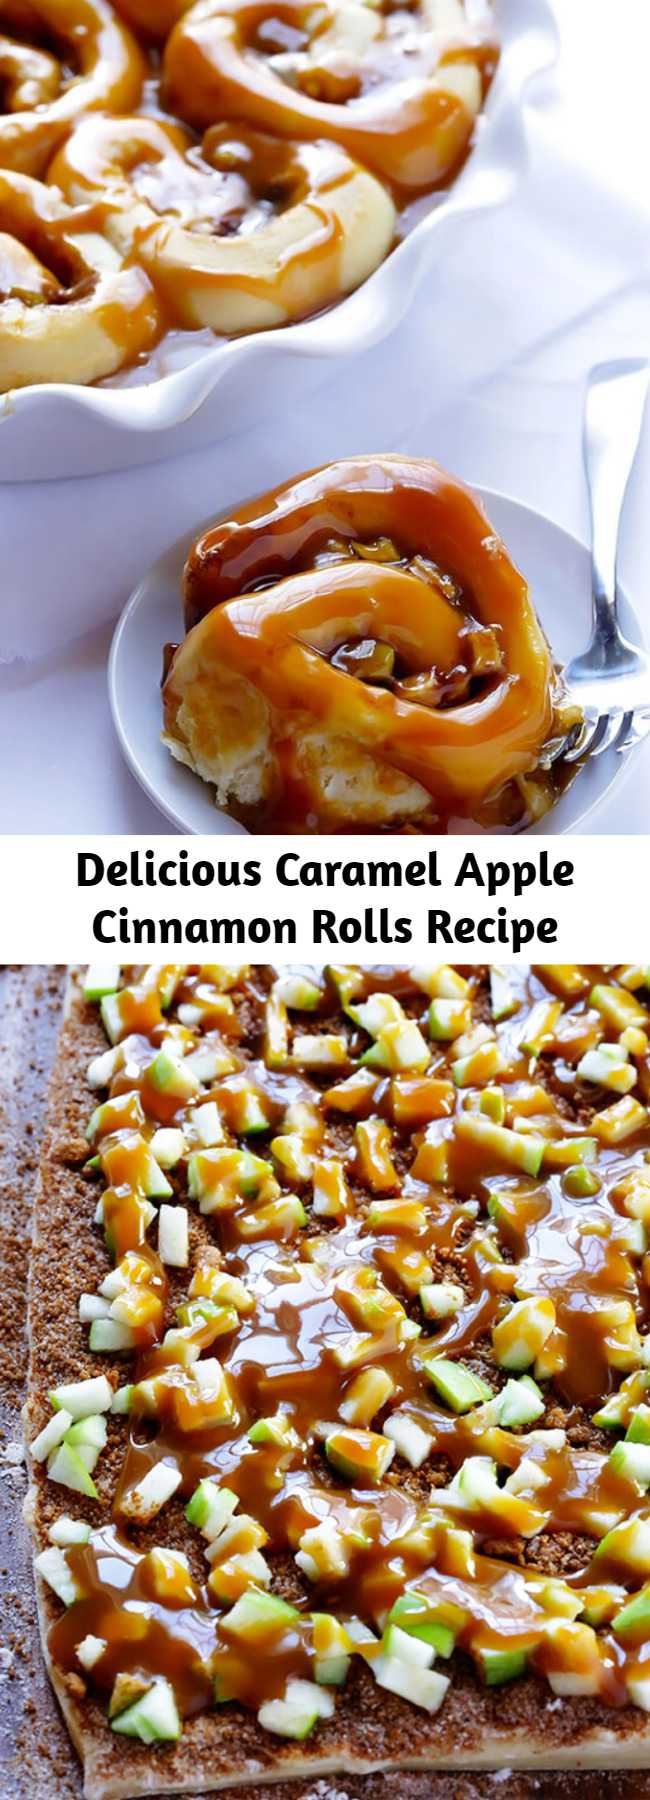 Delicious Caramel Apple Cinnamon Rolls Recipe - These caramel apple cinnamon rolls are filled with delicious sweet caramel and tart apples — the perfect combination! Made in 1 hour, and will send you into caramel apple heaven.